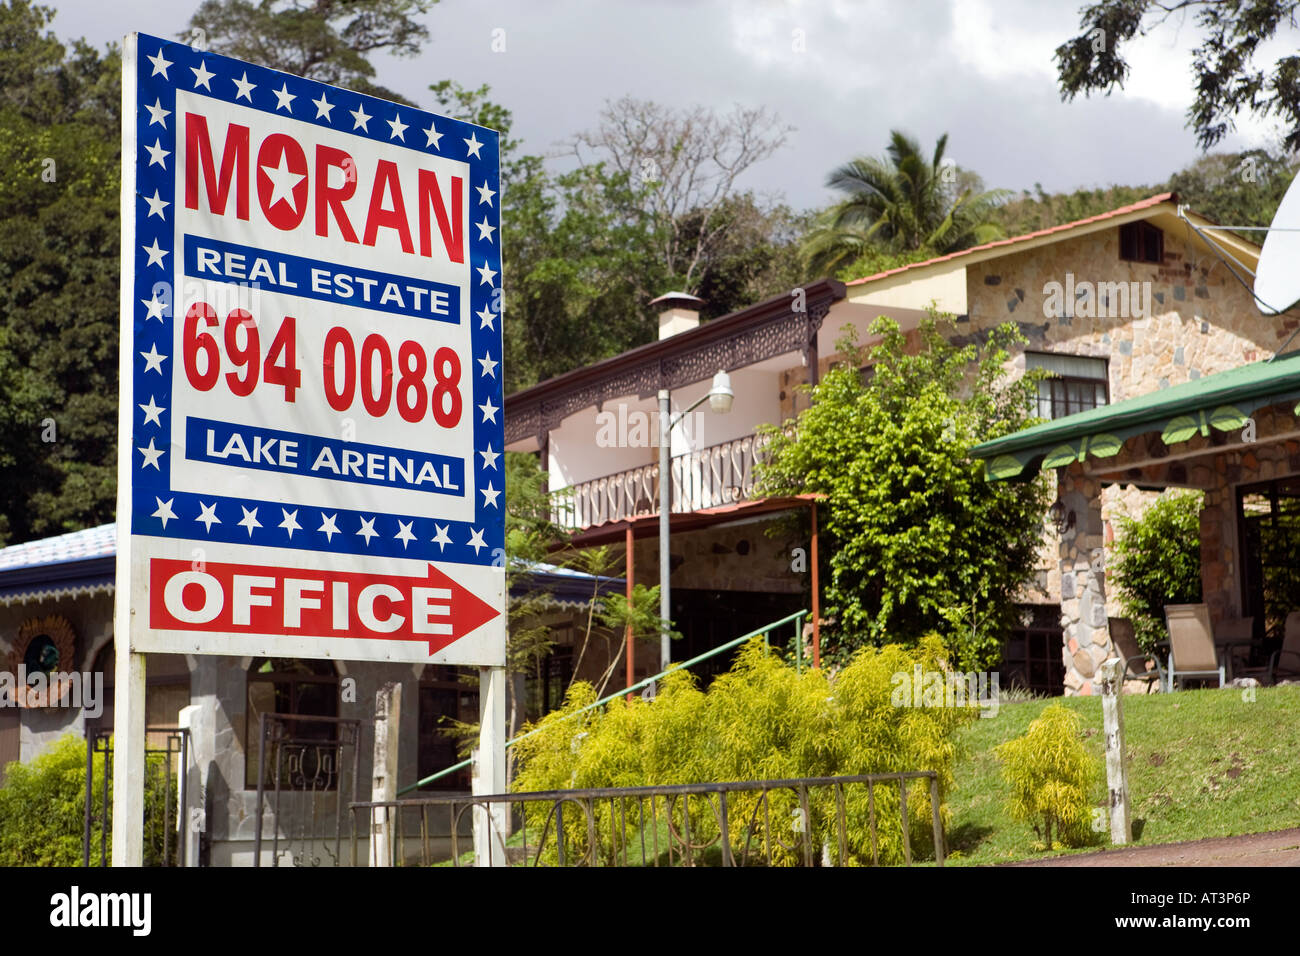 Costa Rica Laguna Arenal Real Estate agents sign outside lakeside property for sale - Stock Image